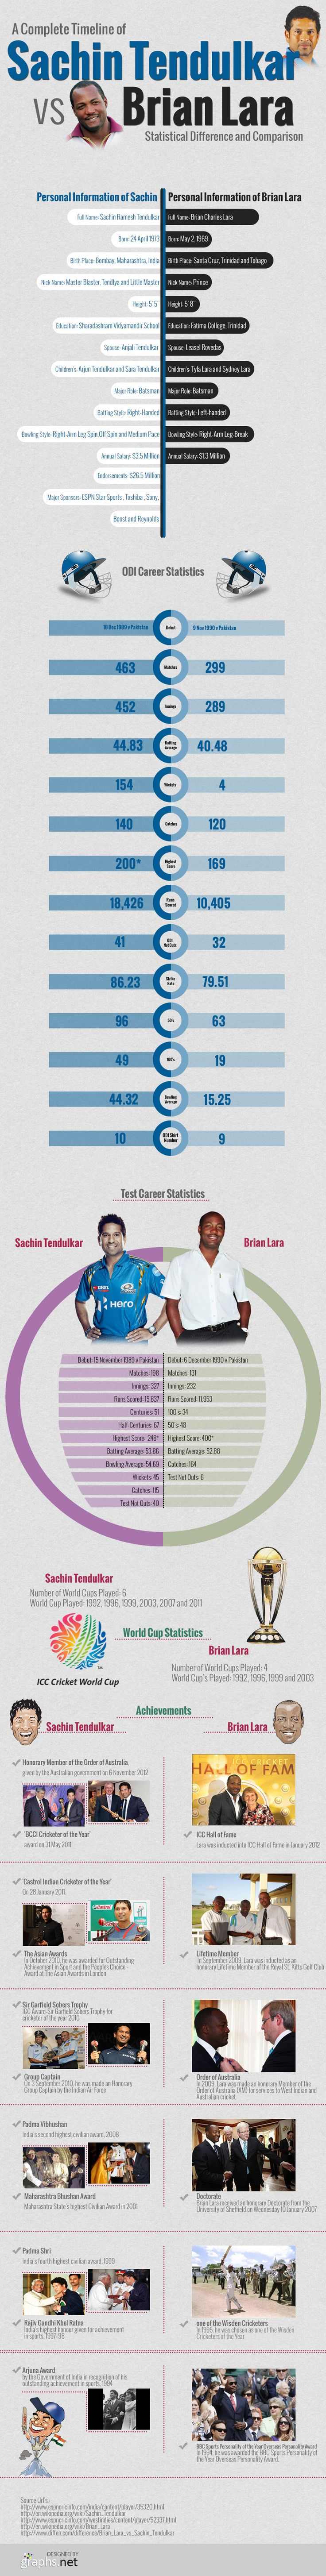 It's always overwhelming when you talk about the cricket's two greatest players Sachin Tendulkar and Brian Lara, who have redefined the history of cricket. It's not that easy to conclude who's the best among Lara and Sachin, but with the statistical comparison, most of the cricket lovers can rate either Sachin or Lara as the World's best batsman. -